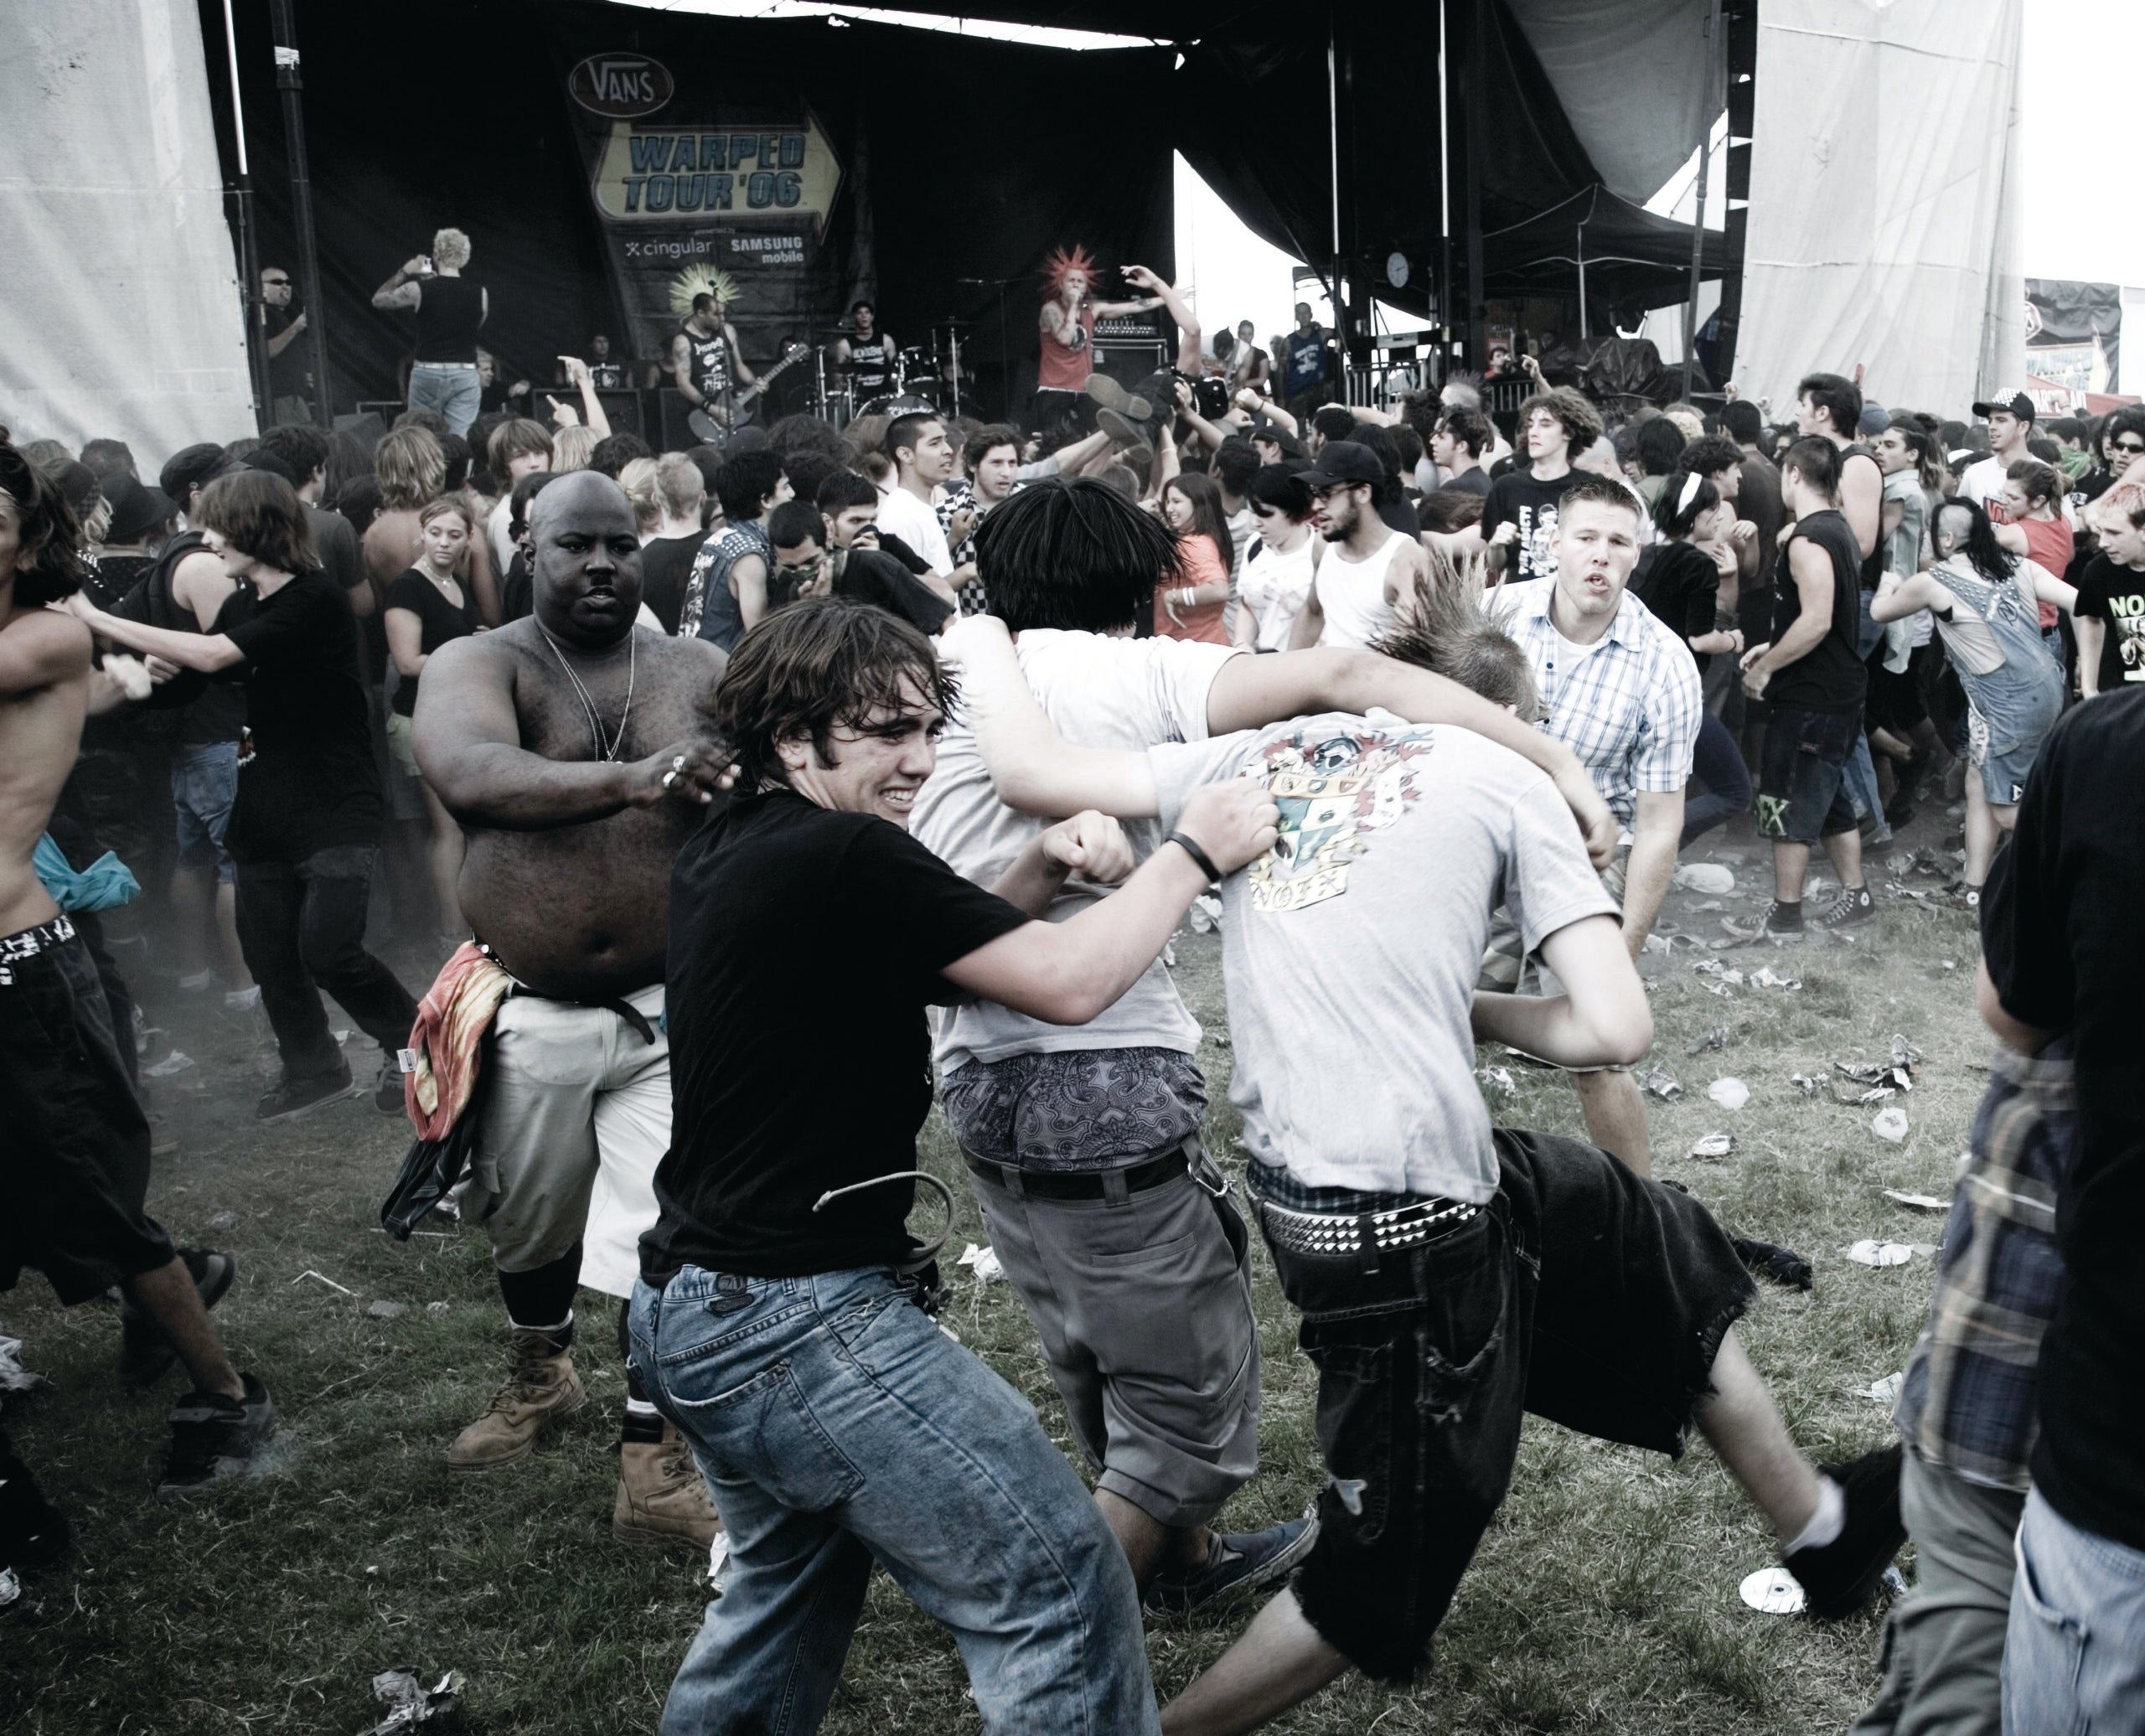 How To Survive A Mosh Pit